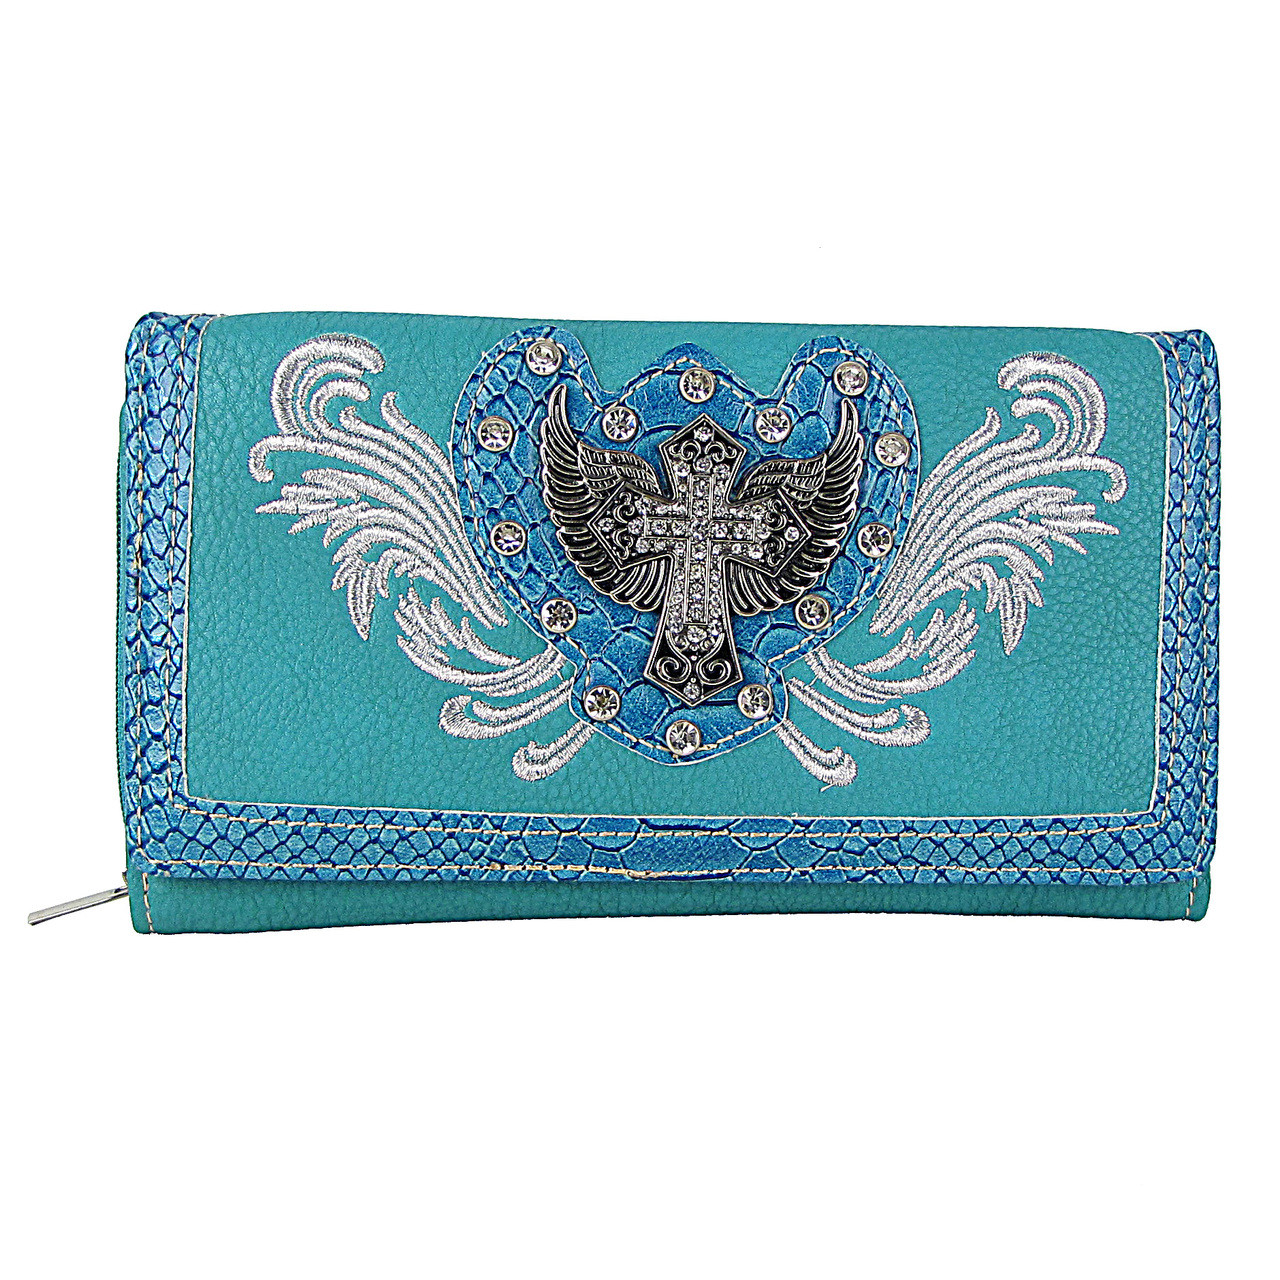 TURQUOISE STUDDED RHINESTONE STITCHED WINGED CROSS LOOK CHECKBOOK WALLET CB1-1275TRQ